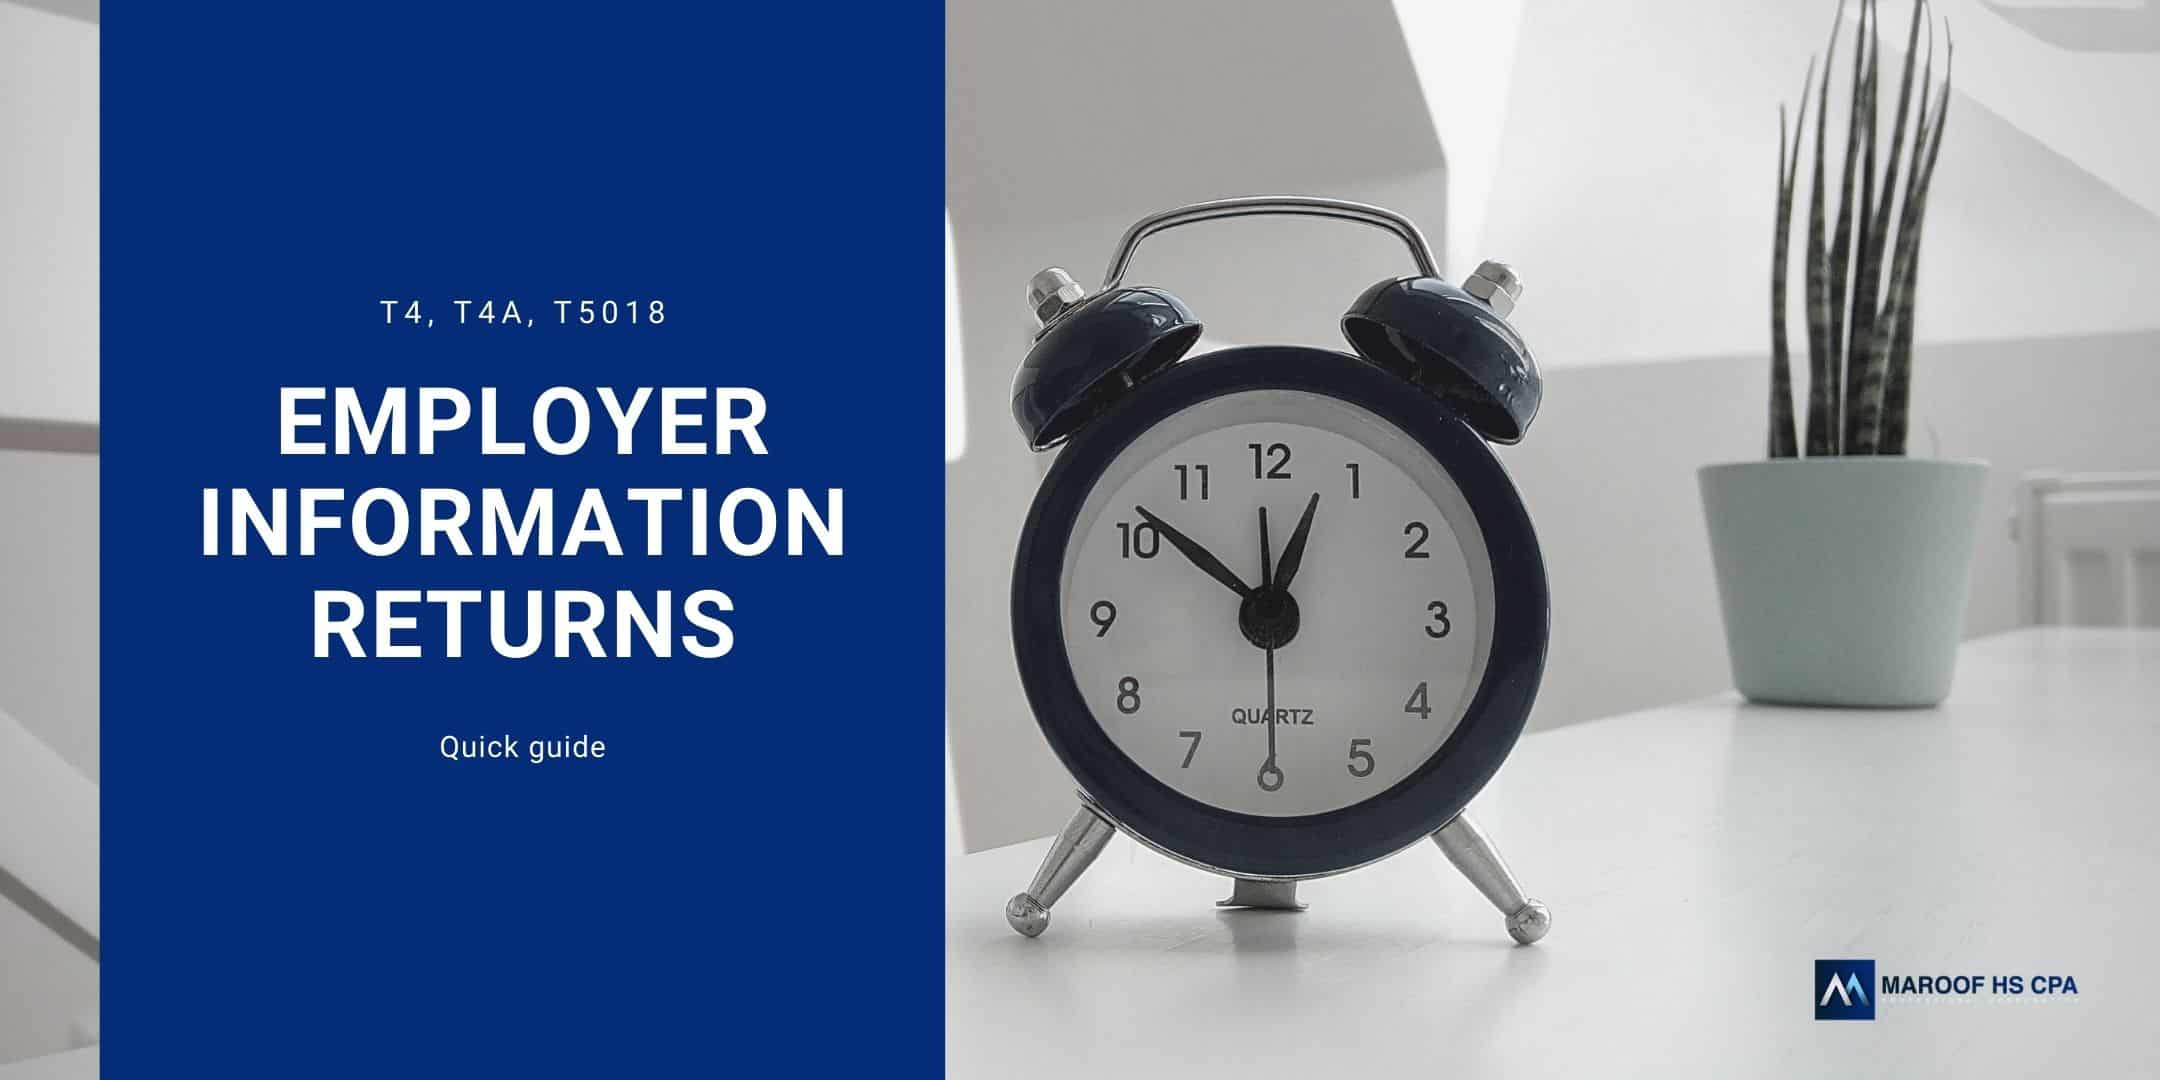 T4 T4A information return guide for employers